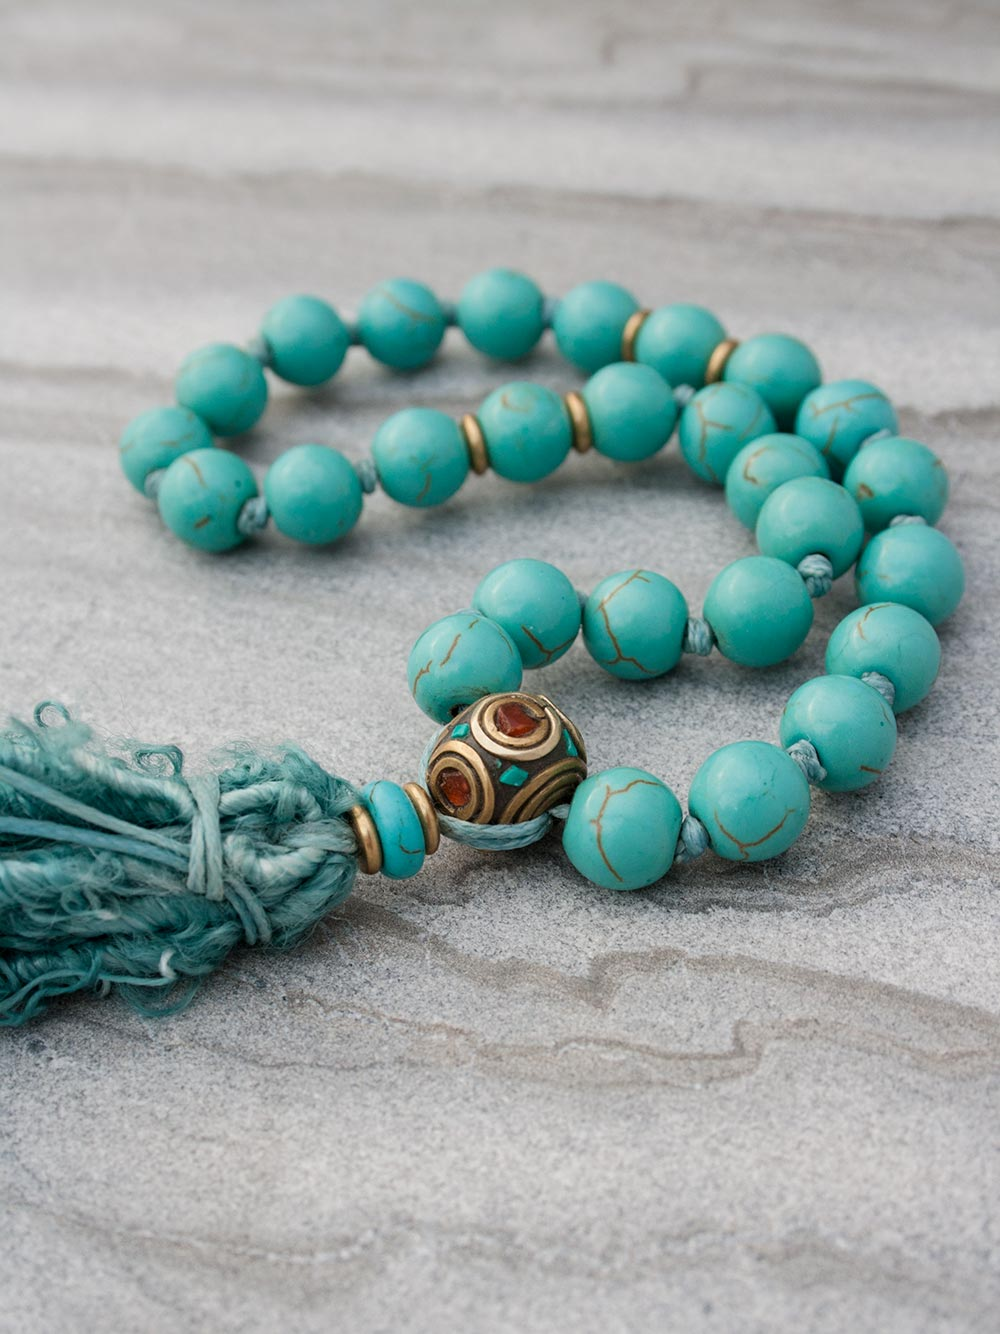 Caprice Hand-Held Mala: 27 beads in 10mm capriccio aqua howlite, with howlite and brass/coral/turquoise Guru setting and sari silk tassel. Full view alternate.